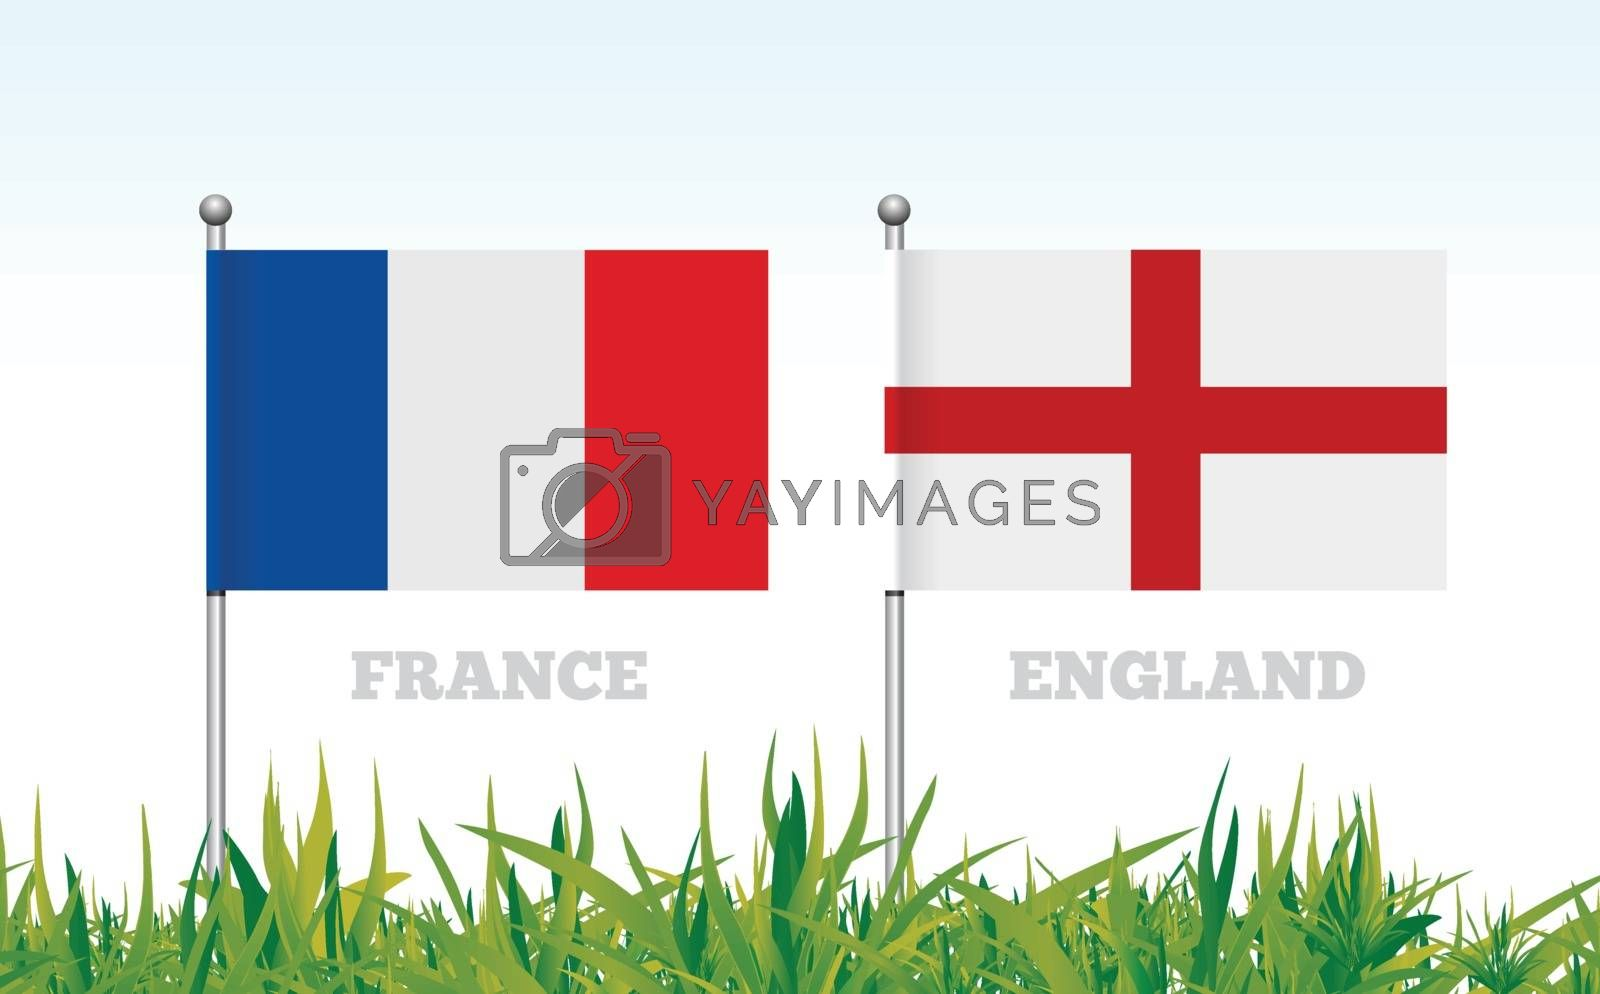 Flags of France and England against the backdrop of grass football stadium. Vector illustration